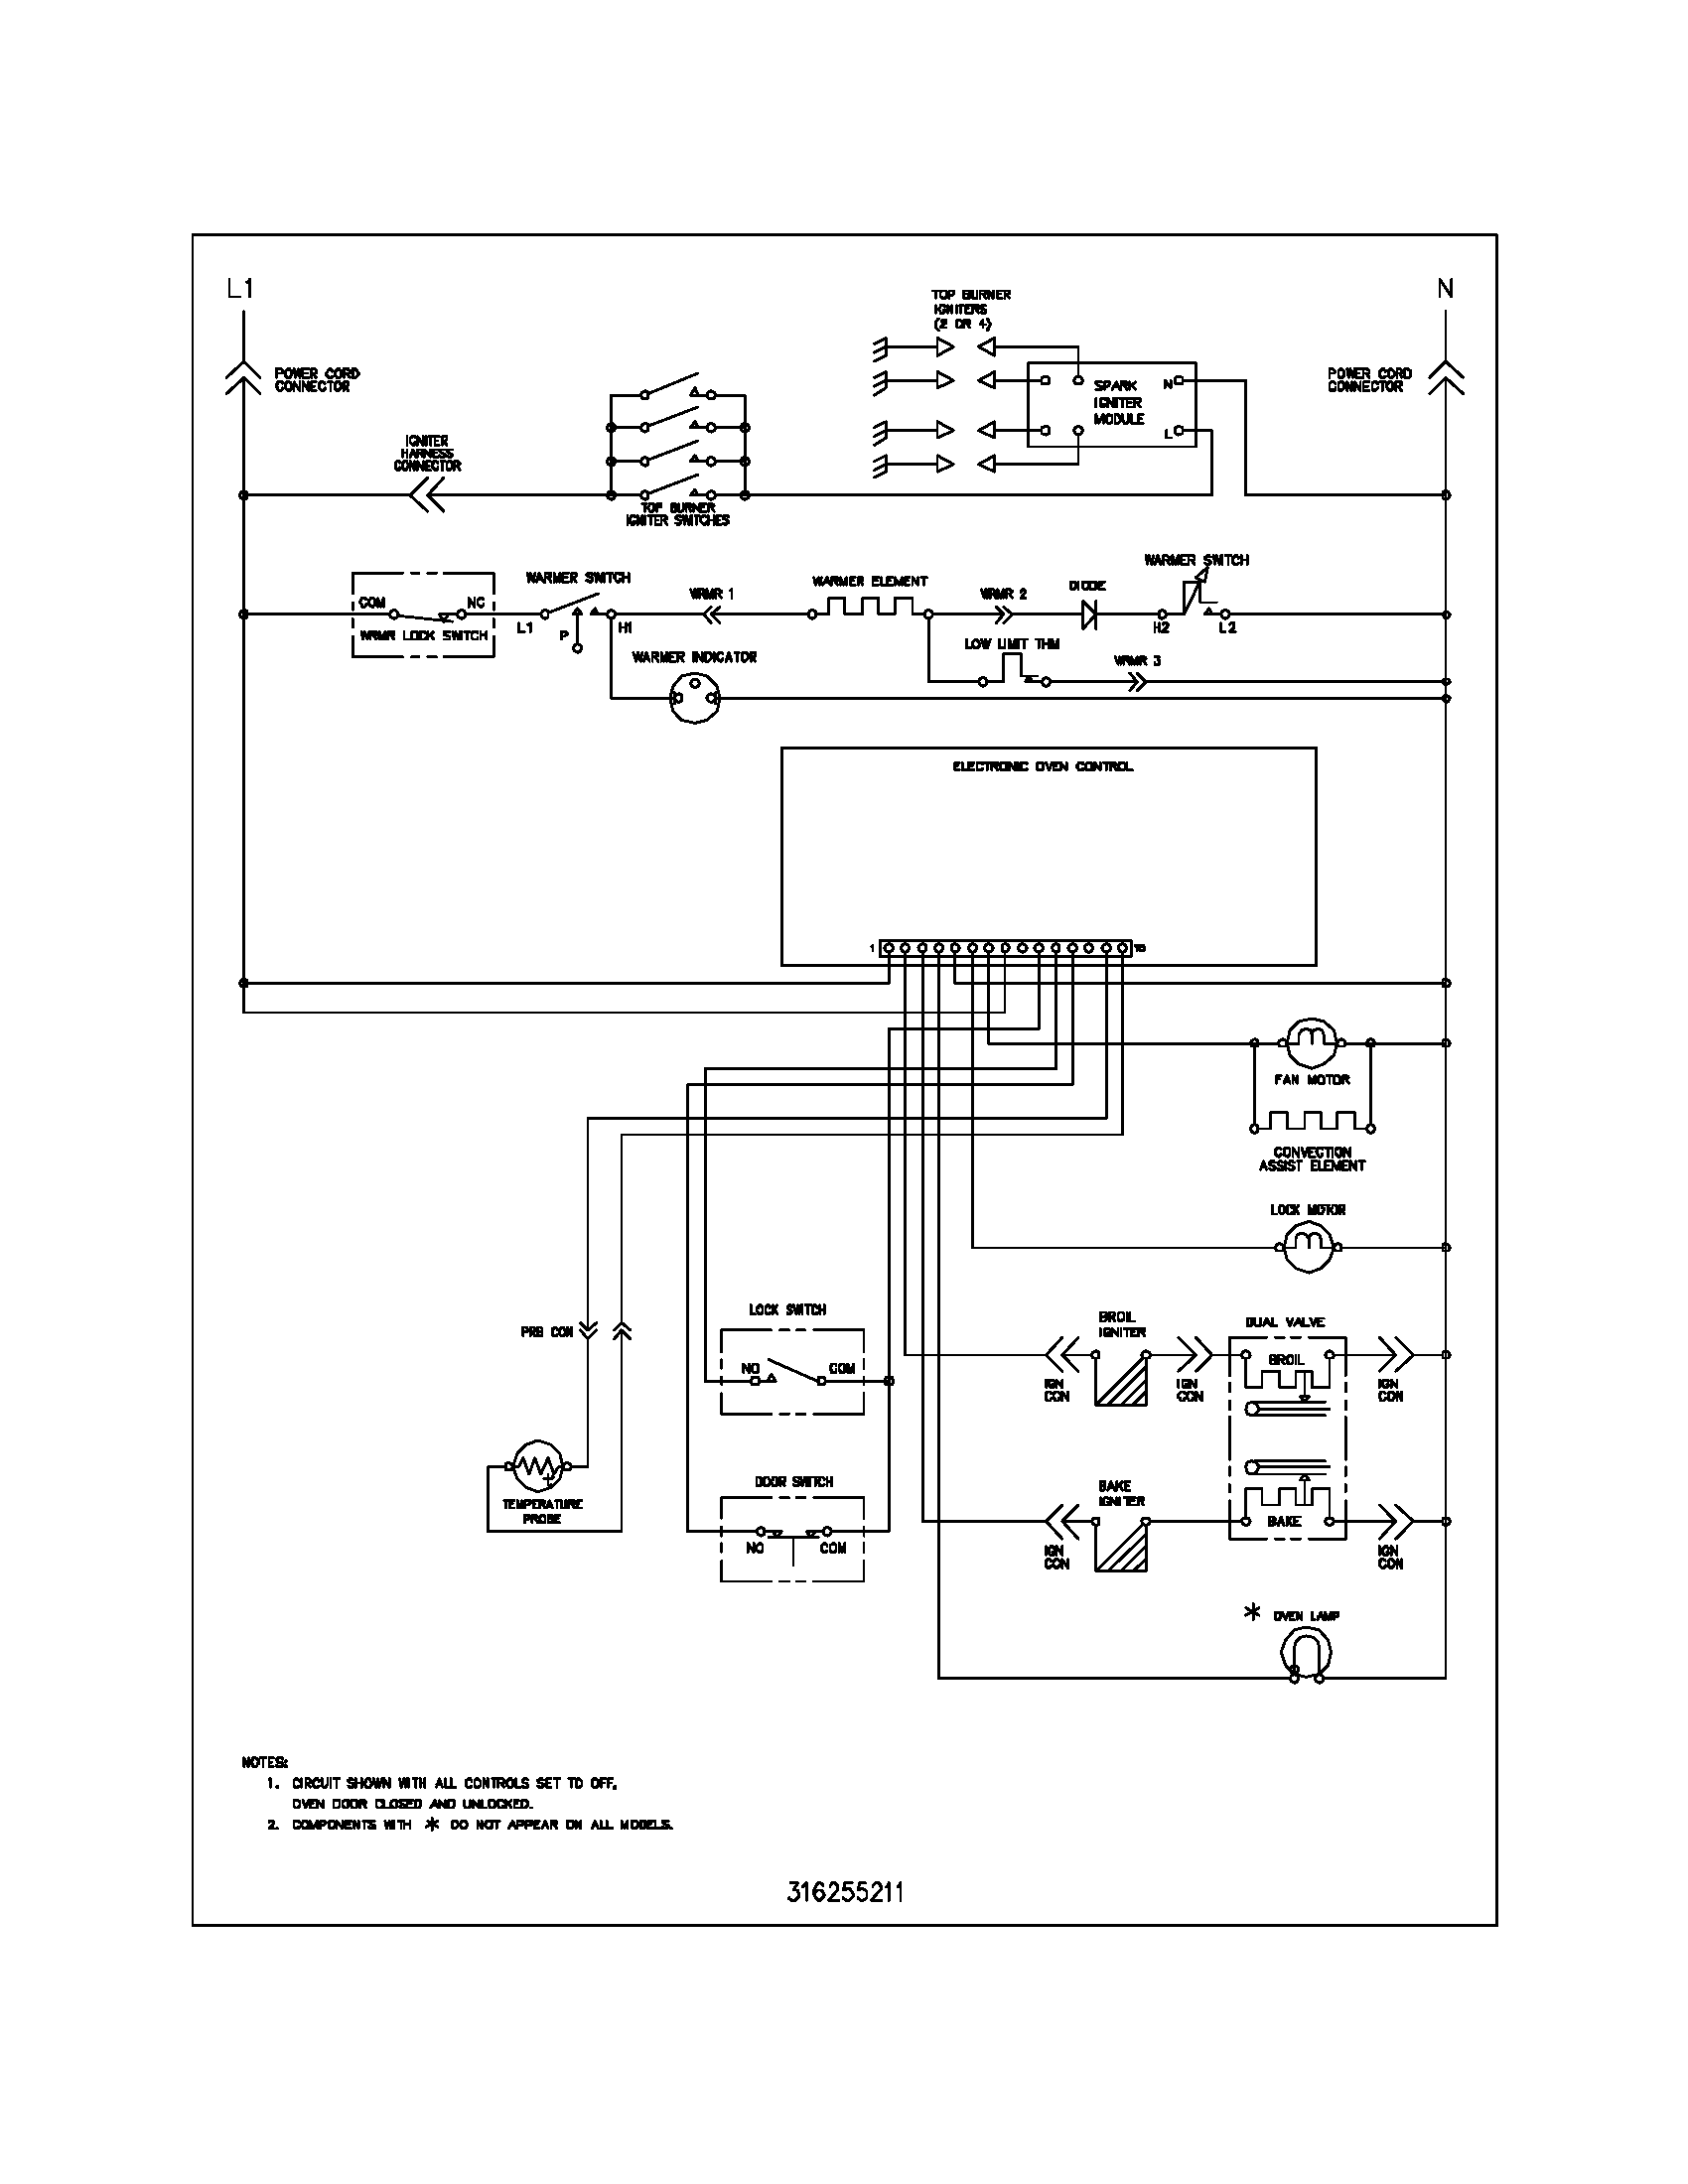 wiring schematic parts frigidaire plgf389ccc gas range timer stove clocks and appliance wiring diagram for electric fireplace at reclaimingppi.co